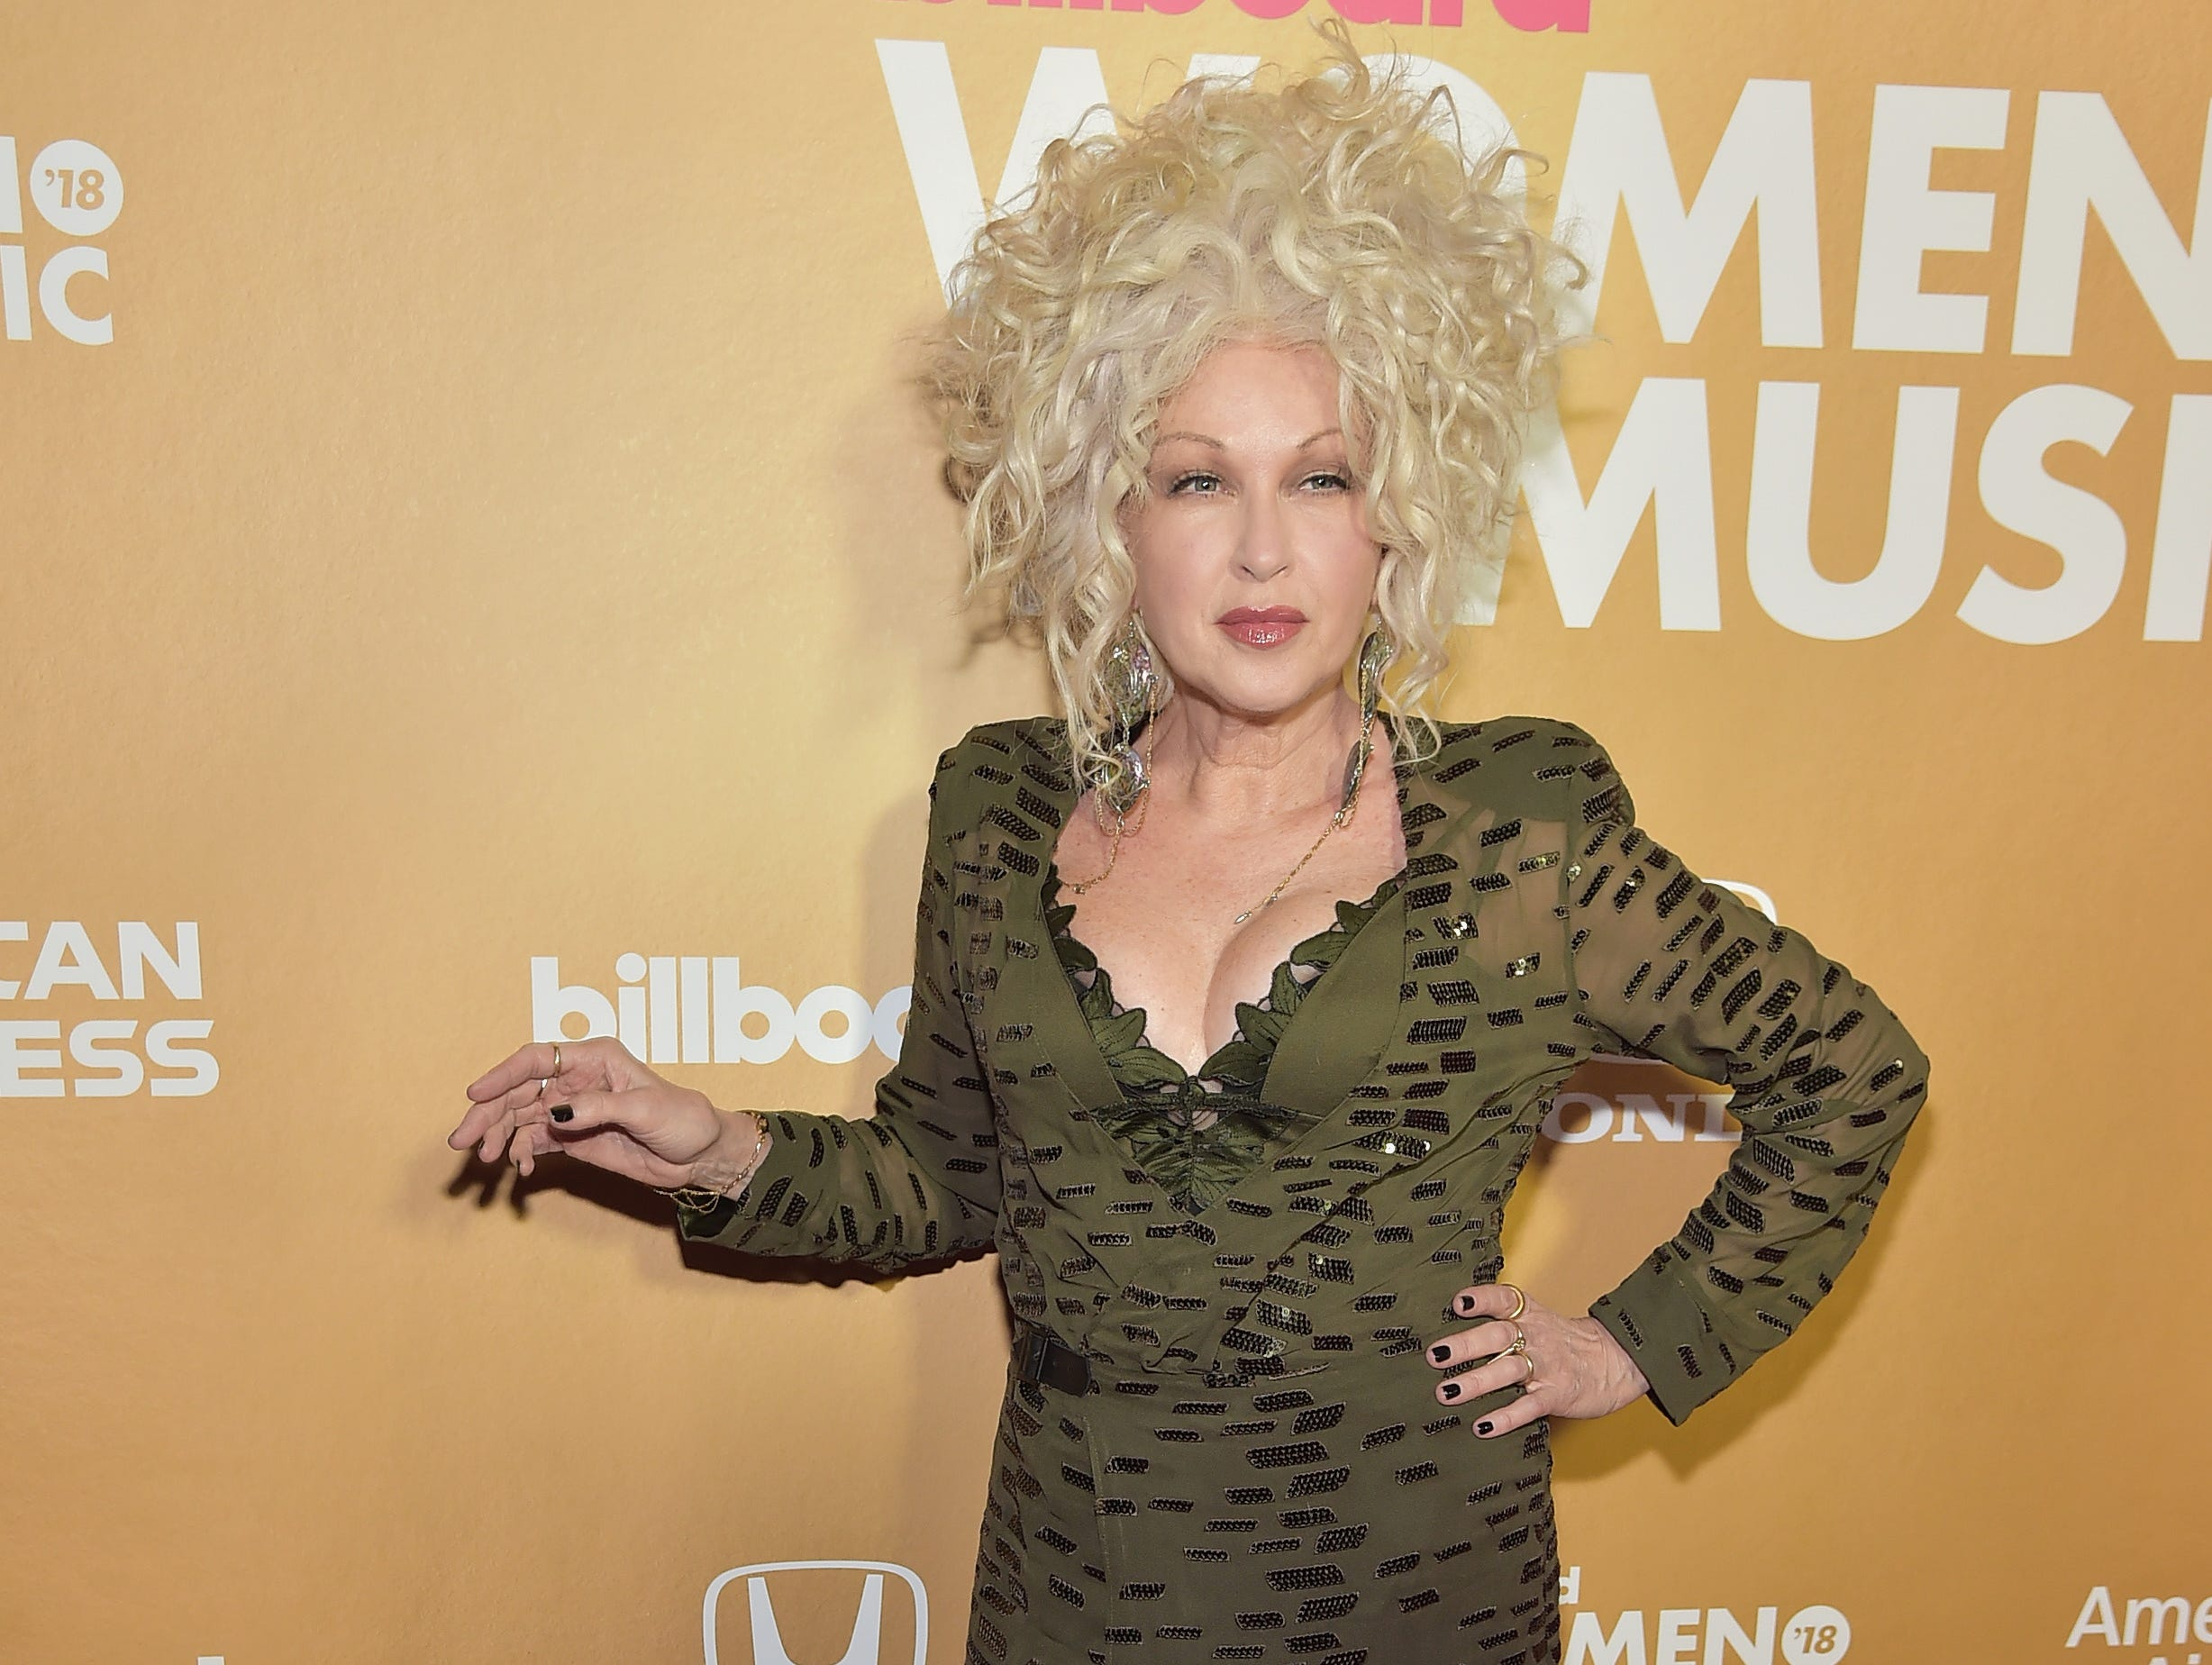 NEW YORK, NEW YORK - DECEMBER 06: Cyndi Lauper attends Billboard's 13th Annual Women In Music Event at Pier 36 on December 06, 2018 in New York City. (Photo by Theo Wargo/Getty Images) ORG XMIT: 775259767 ORIG FILE ID: 1078271466